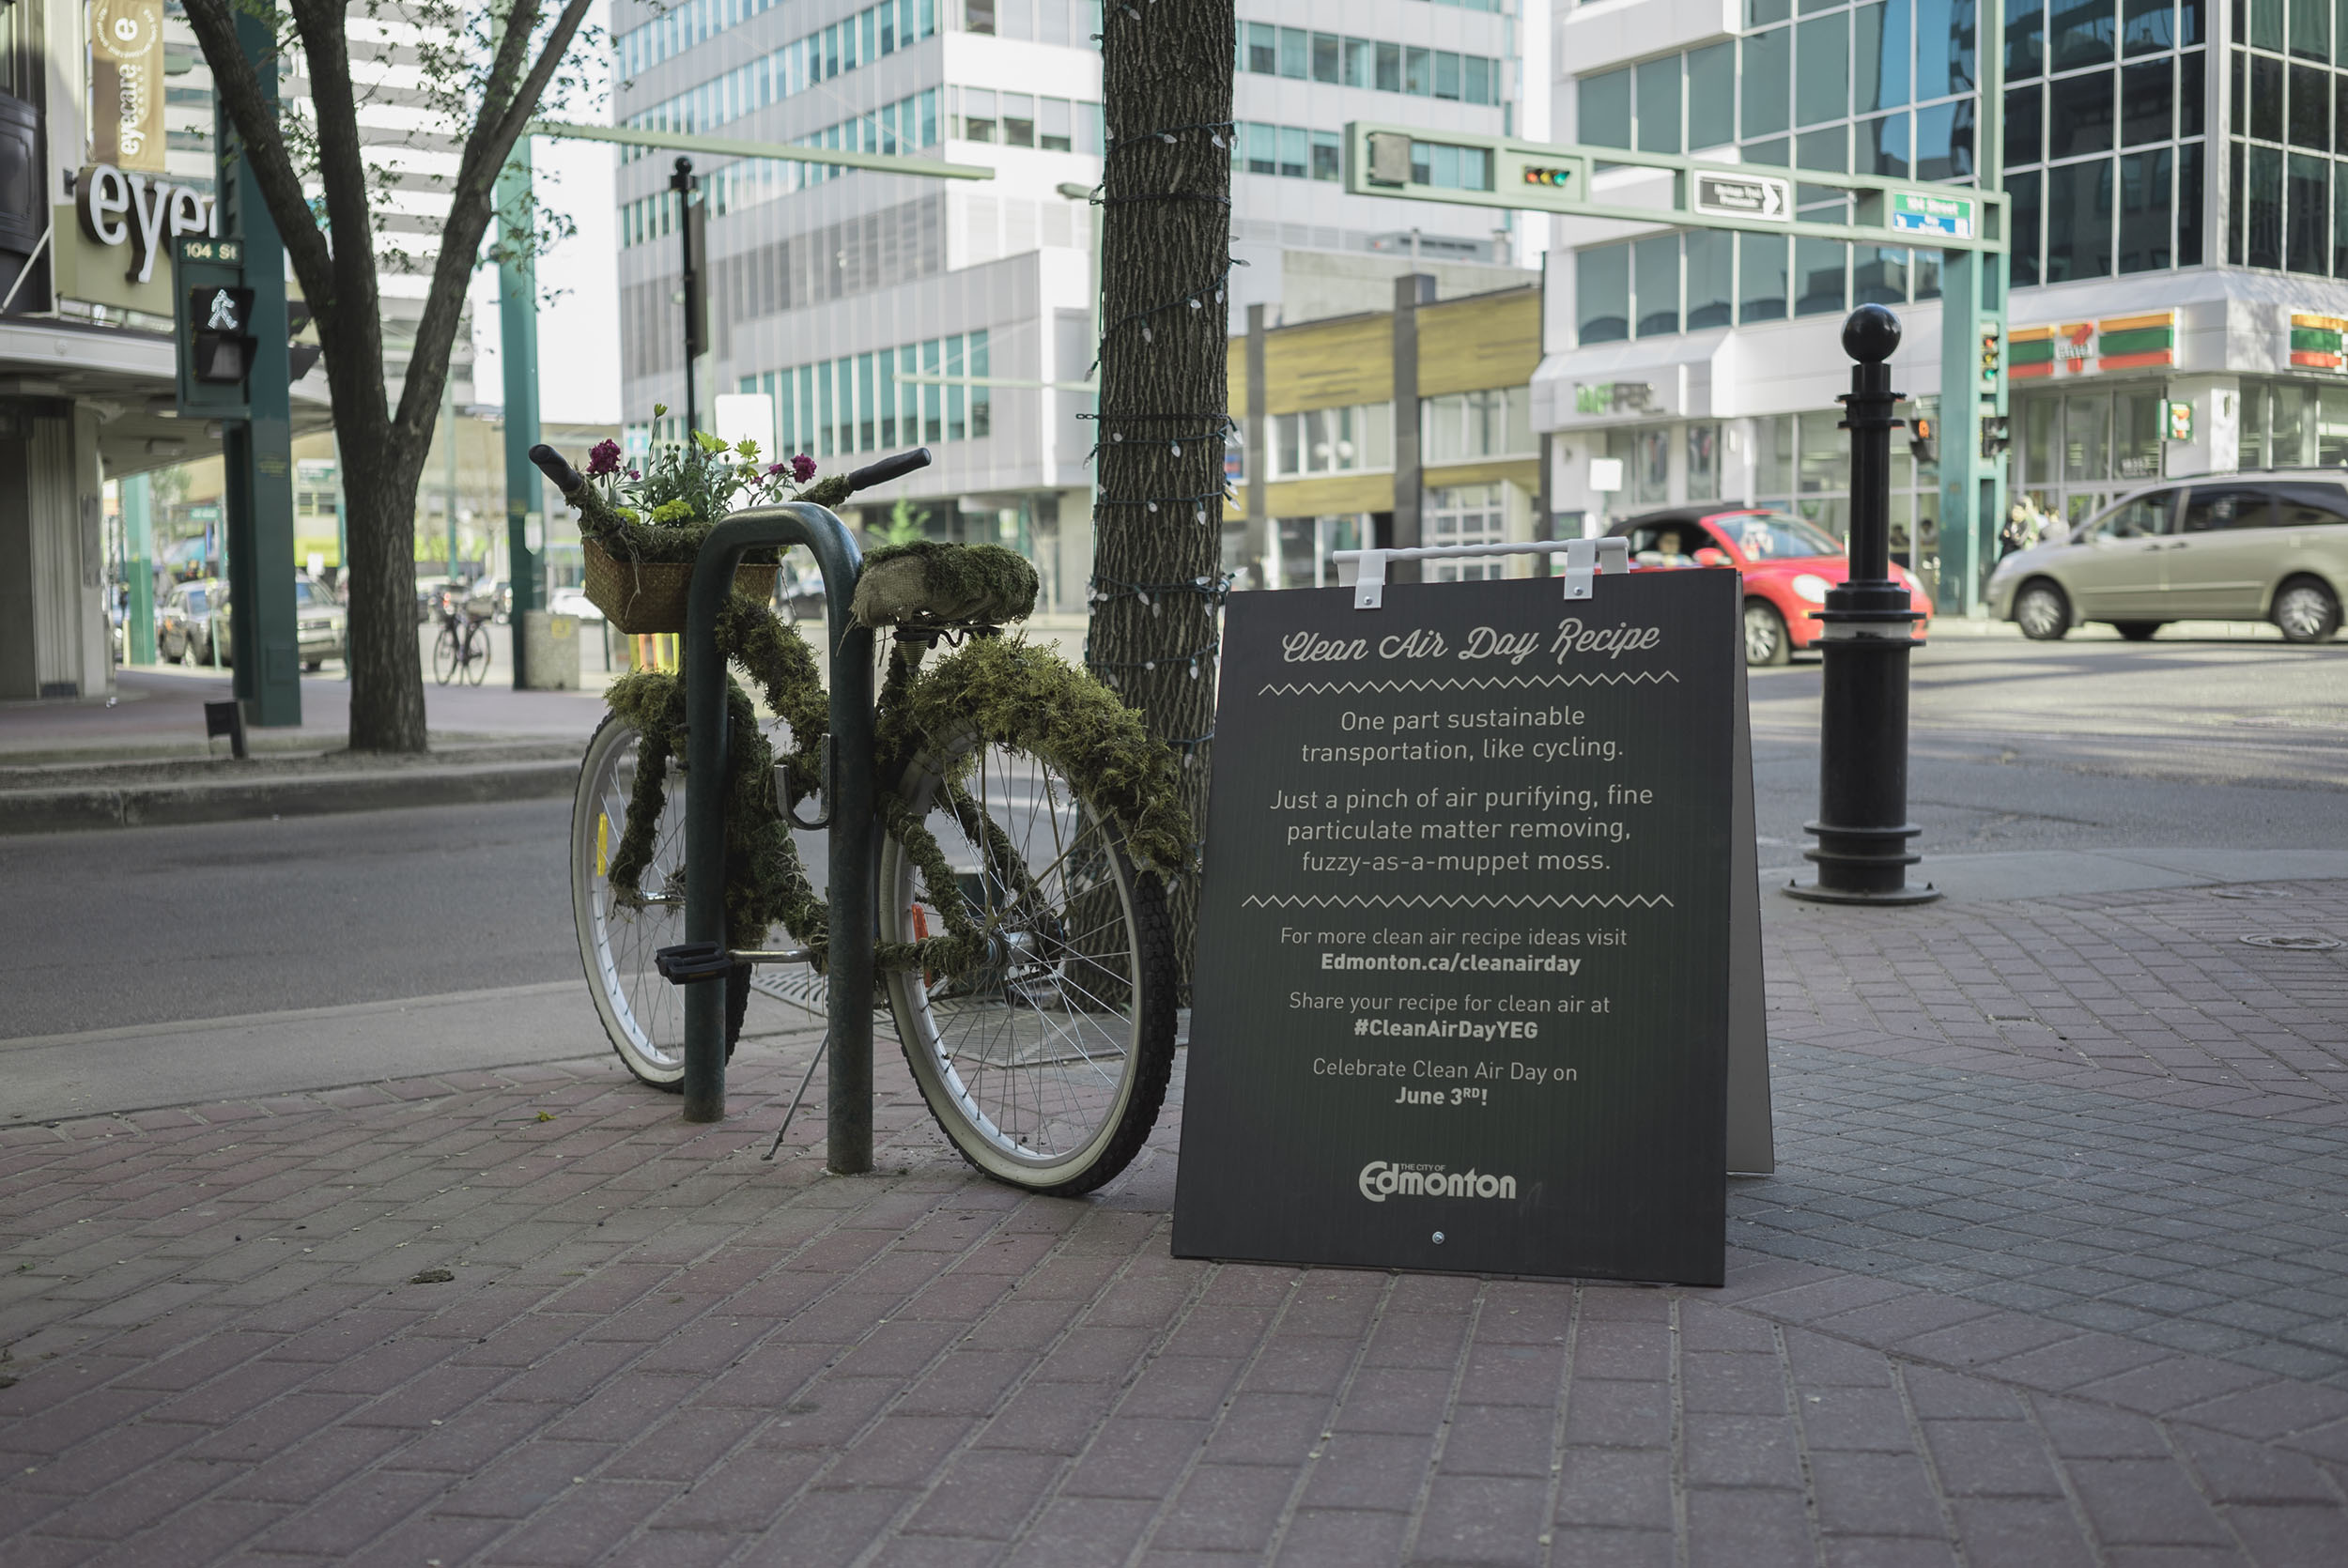 Moss bike advertising campaign in Edmonton